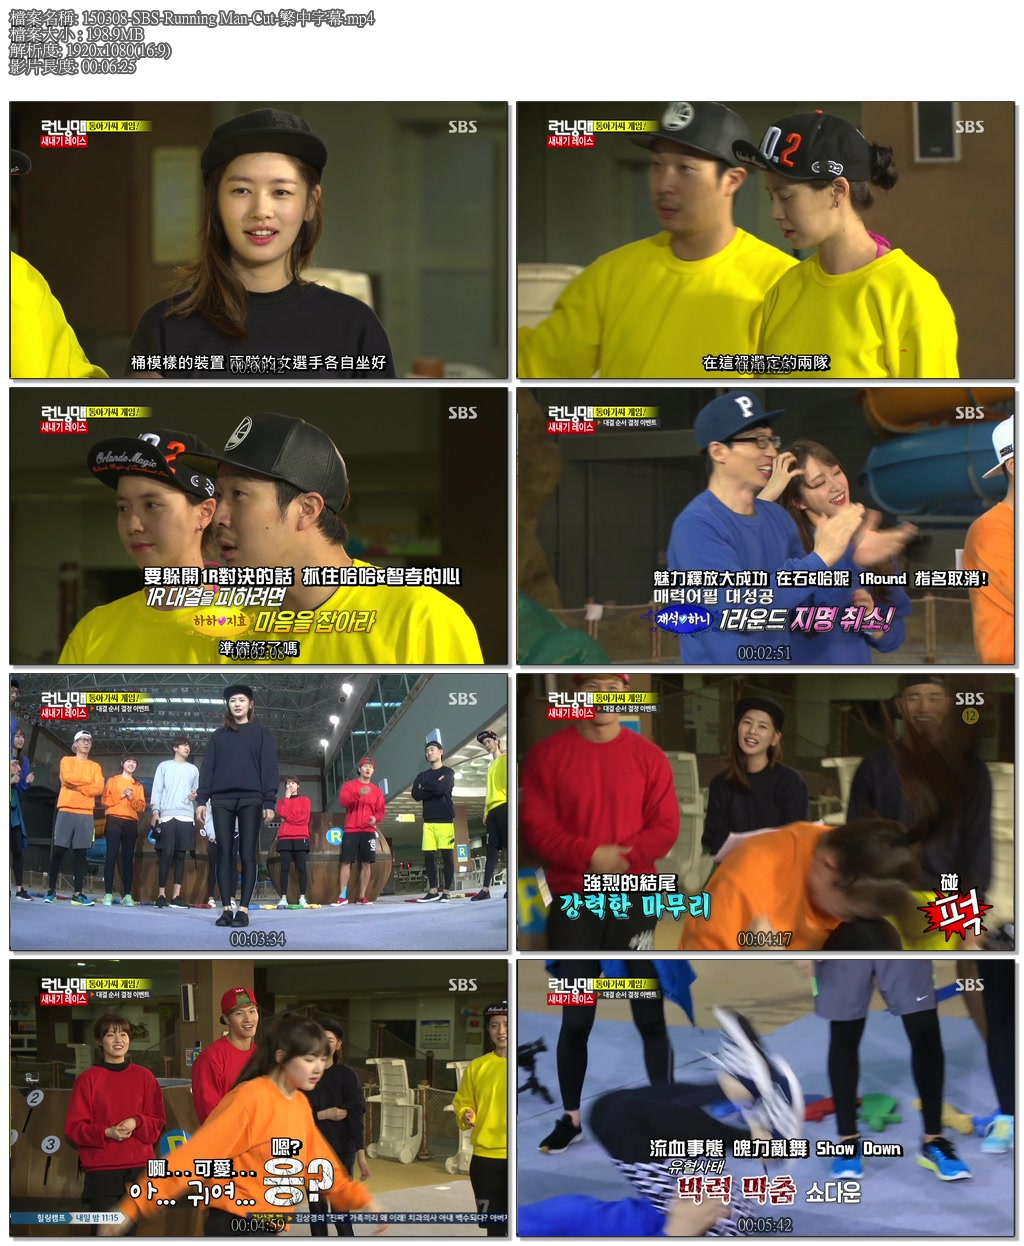 150308-SBS-Running Man-Cut-繁中字幕.mp4.jpg